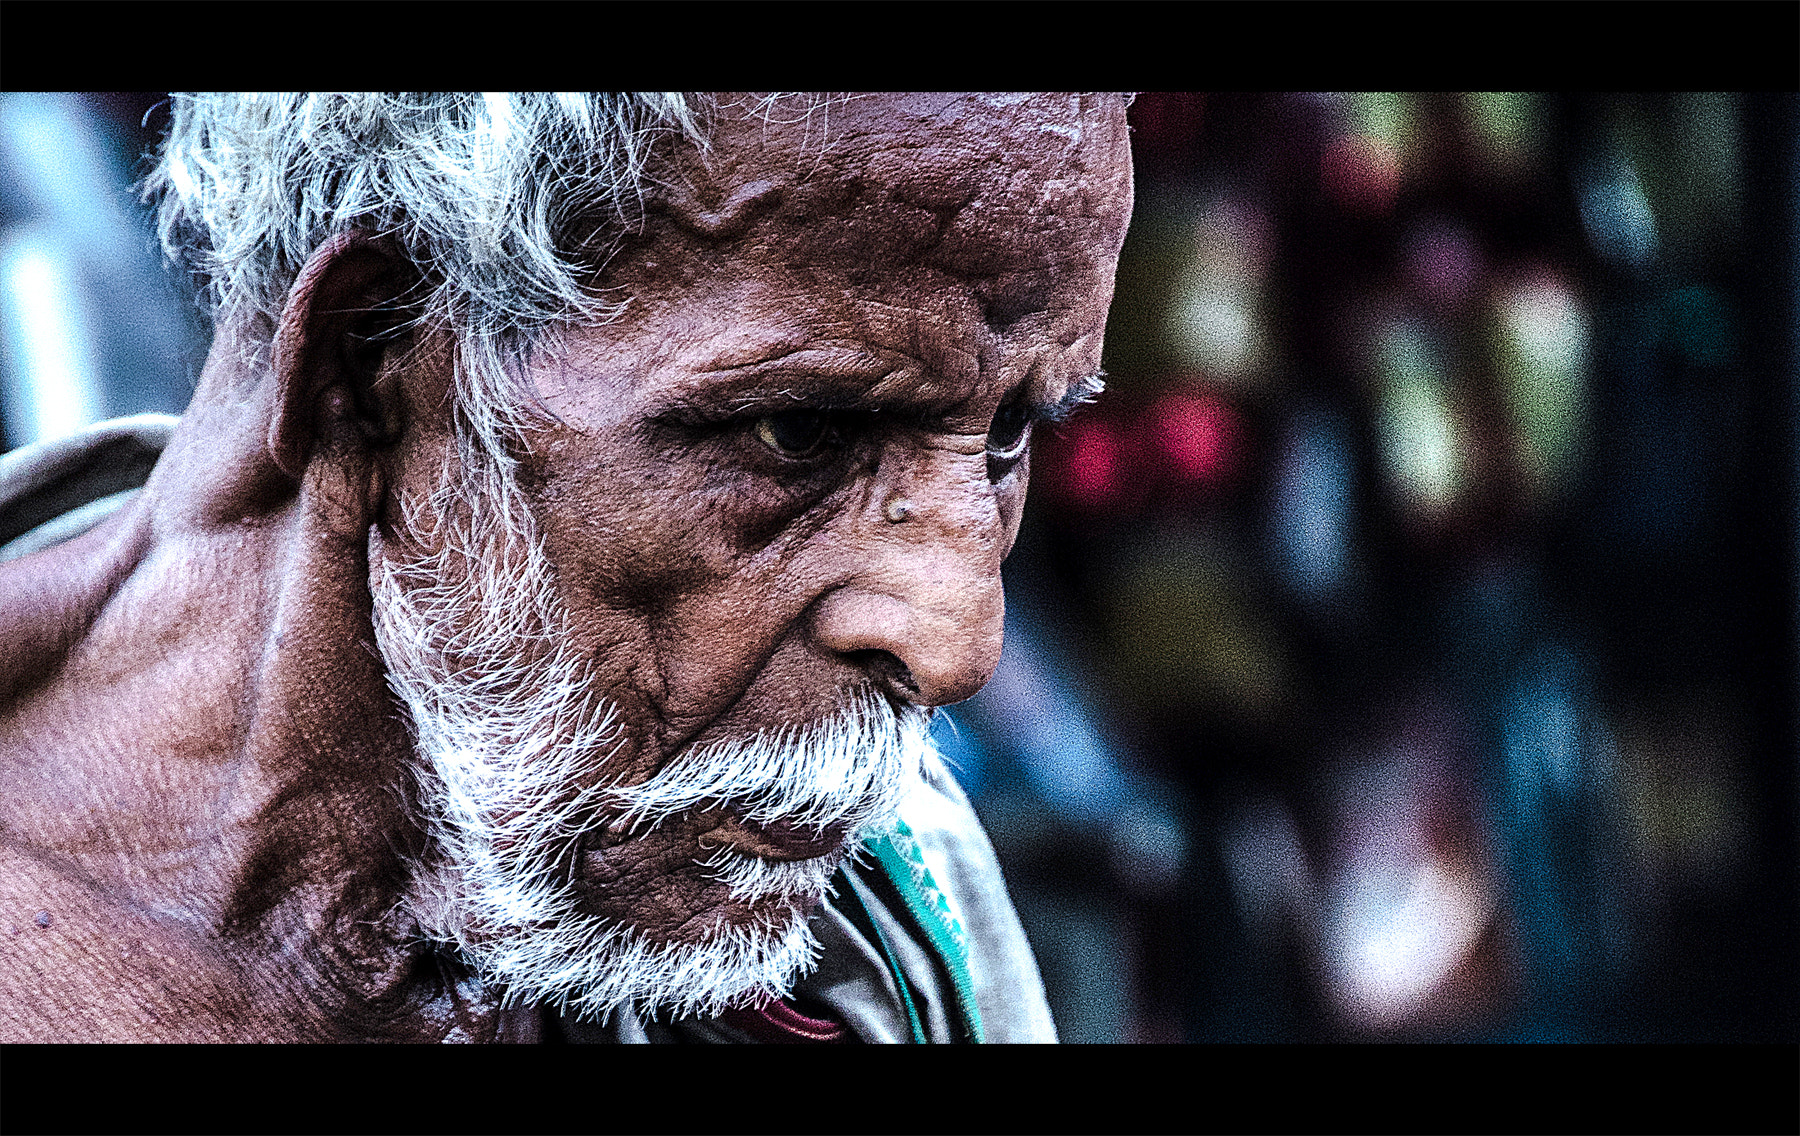 Photograph Traveller by Siddharth Shankar on 500px